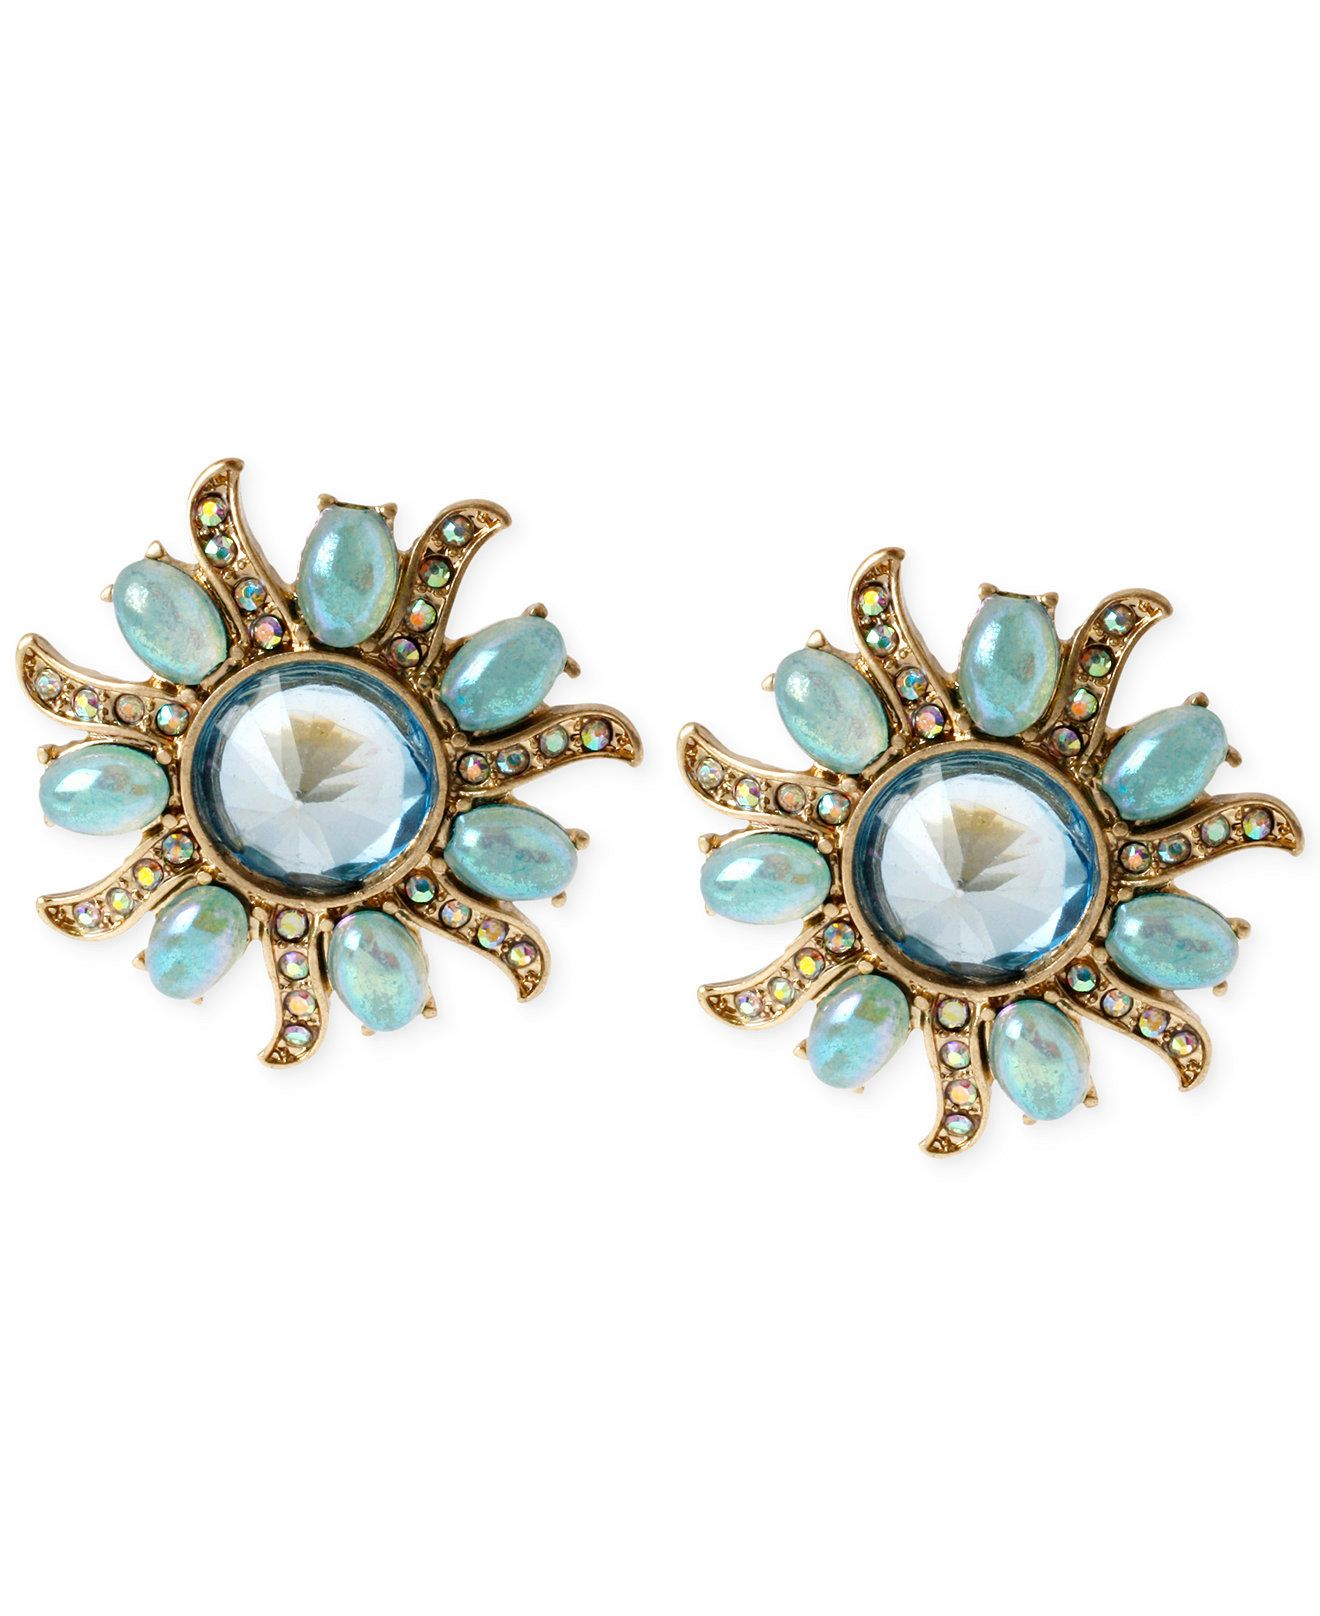 Betsey Johnson Gold-Tone Mixed Bead Star Stud Earrings - Fashion Earrings - Jewelry & Watches - Macy's